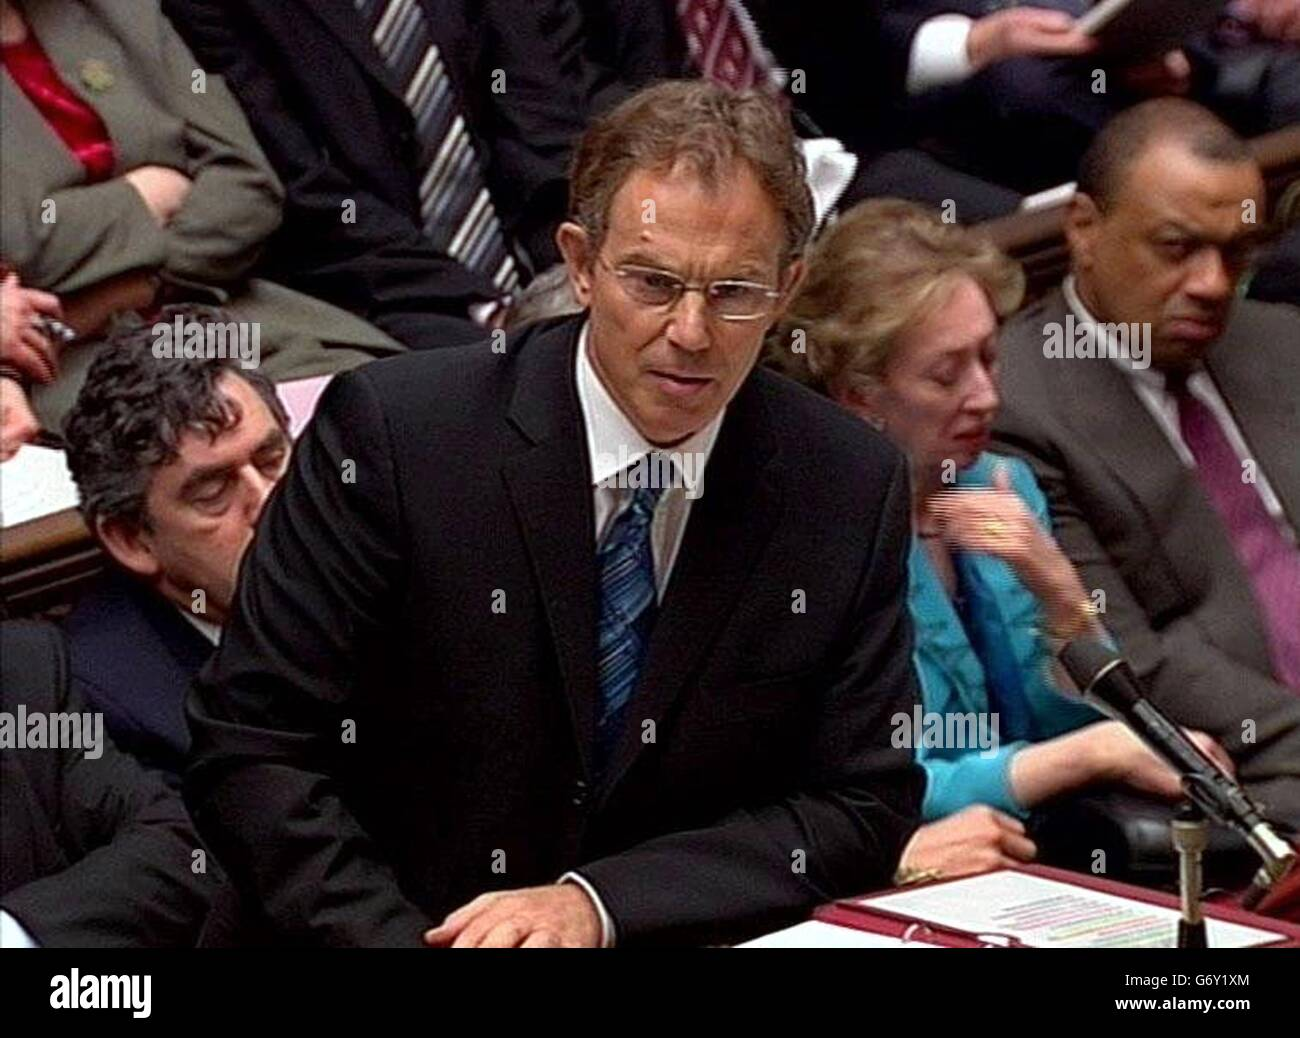 Tony Blair 'Prime Minister's Question Time' - Stock Image